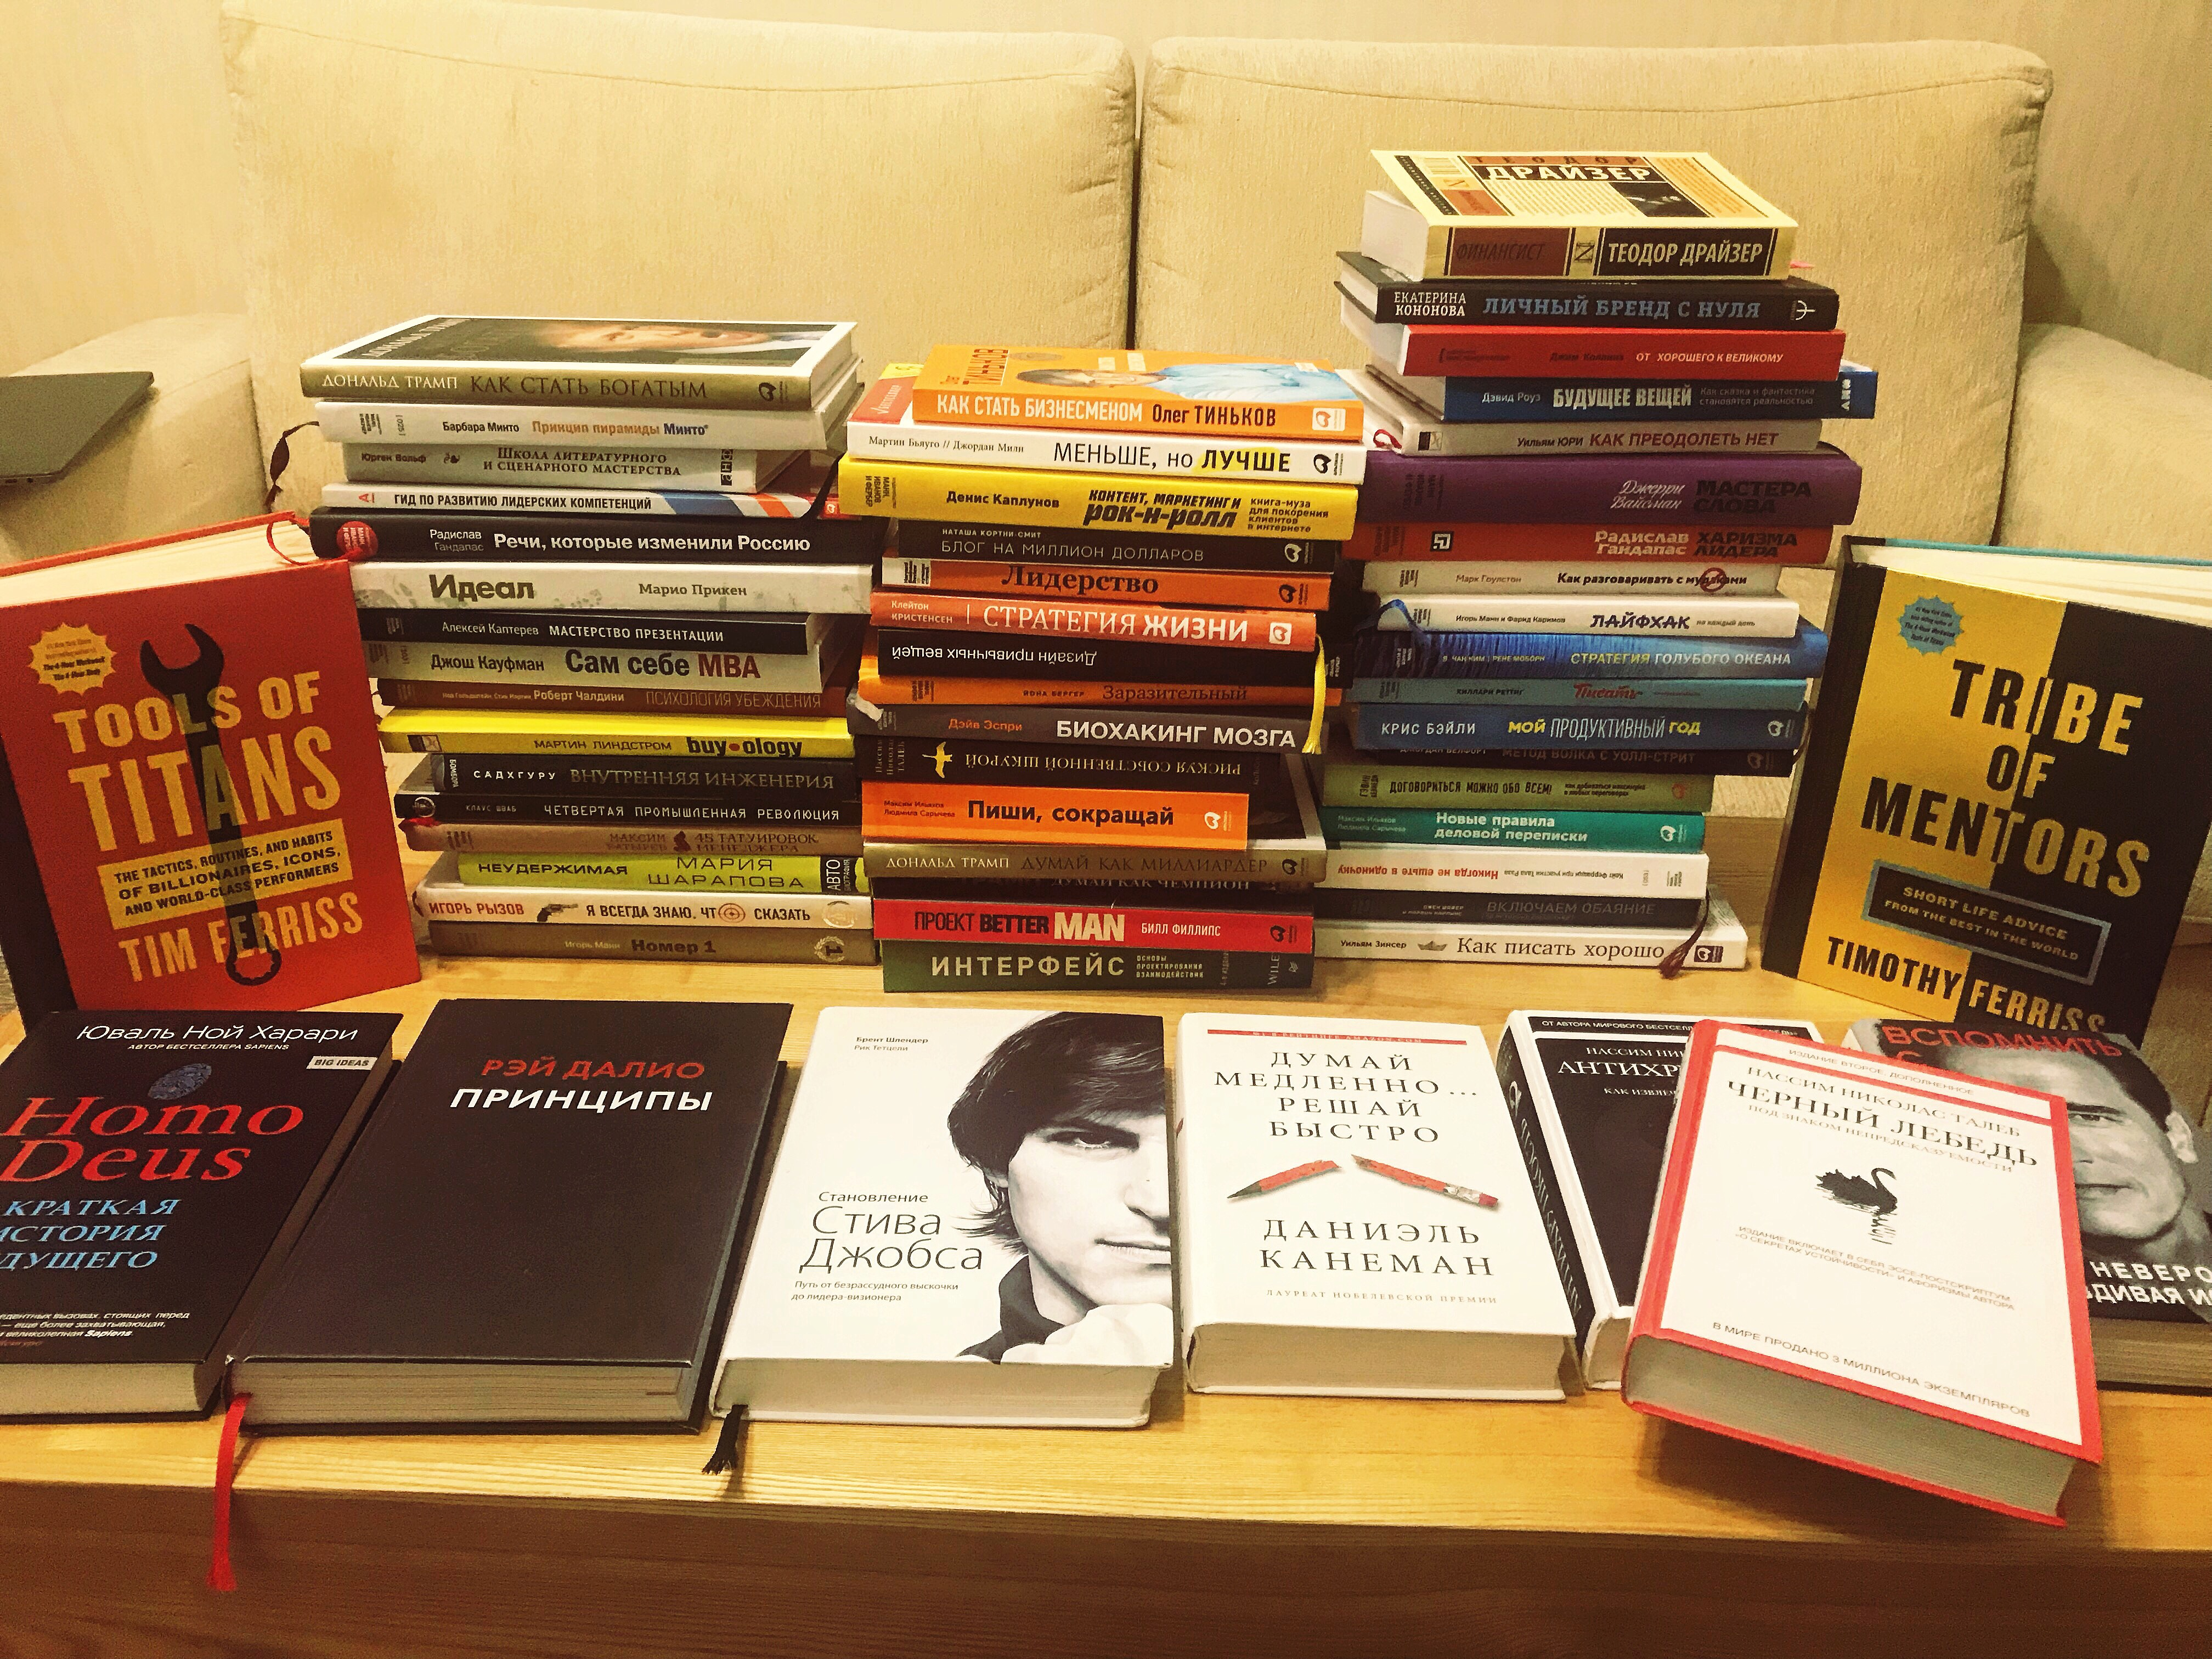 Useful review. 28 books that influenced my thinking, inspired or made better